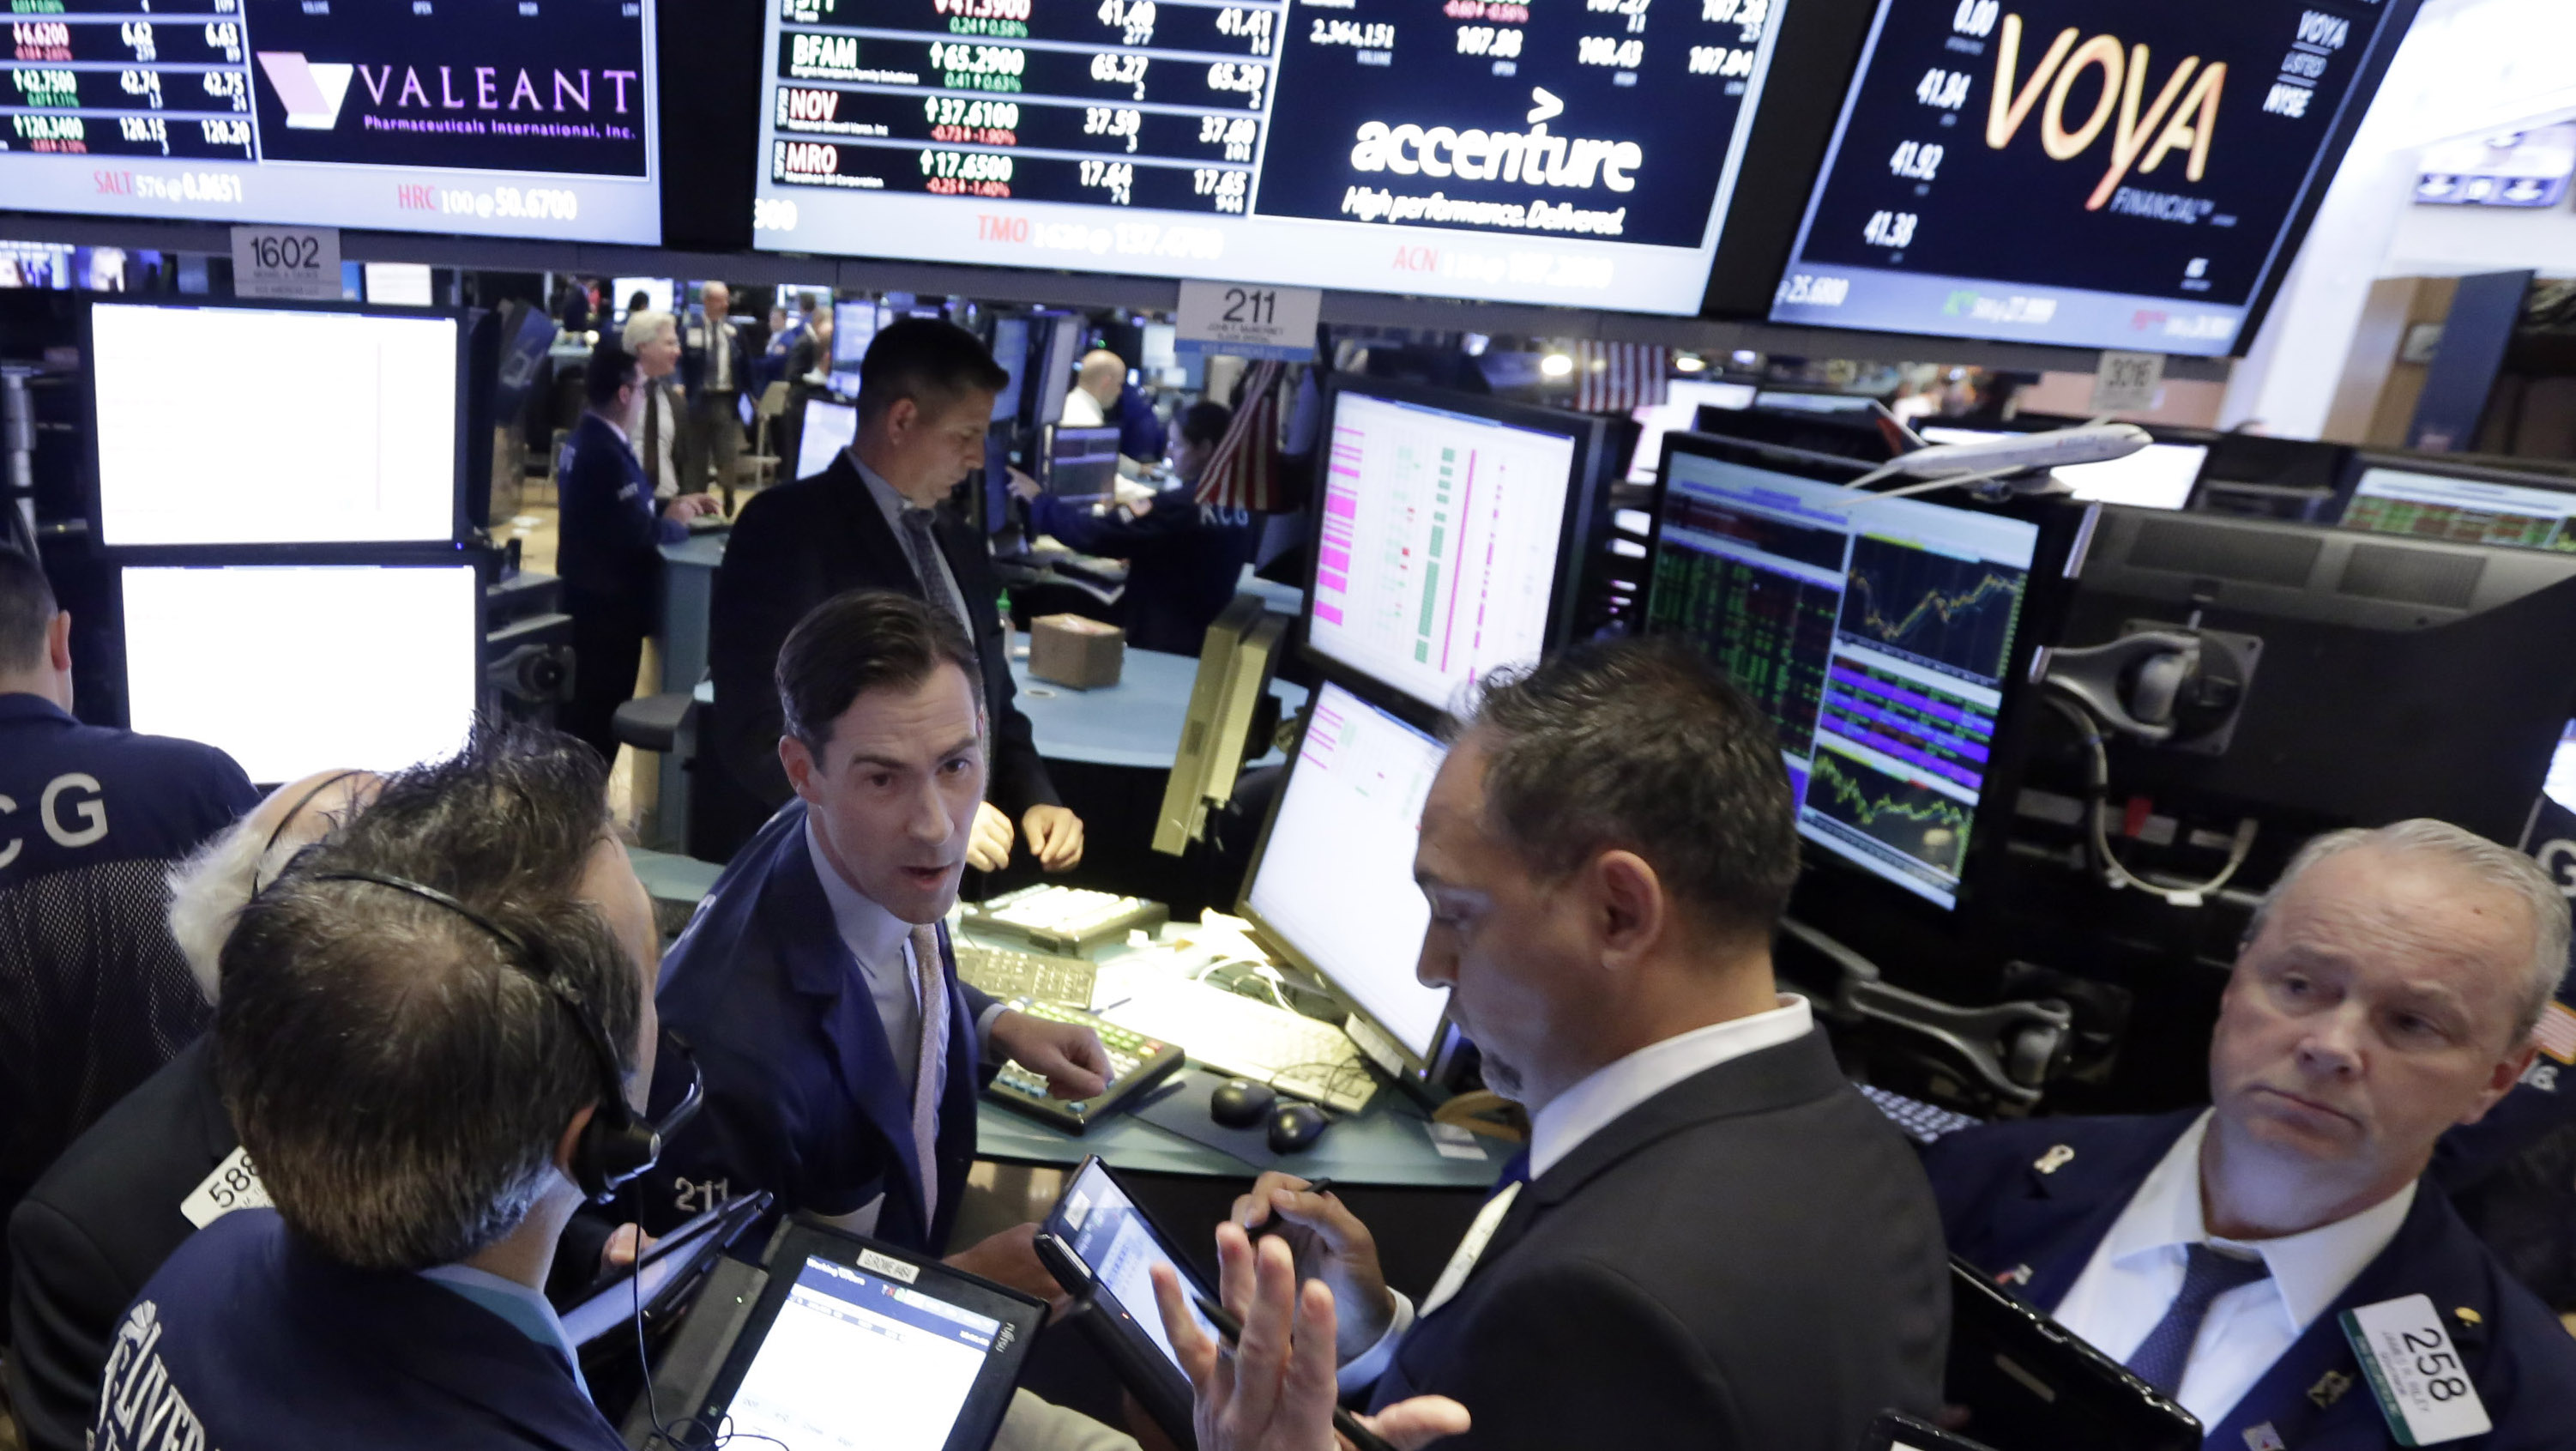 Wall St traders